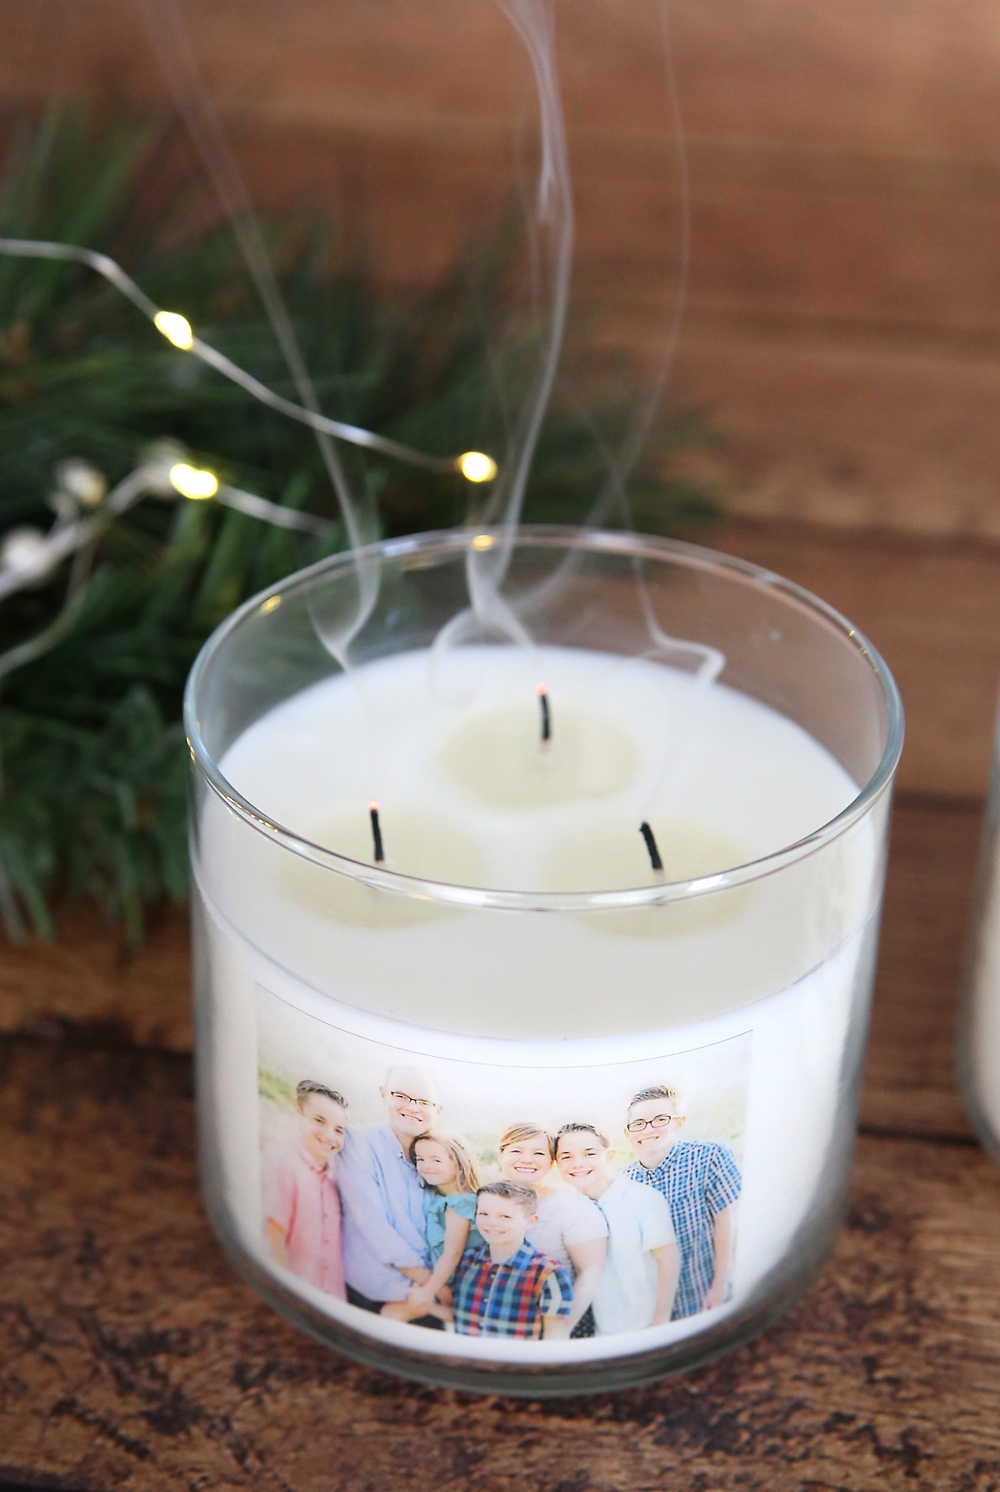 Personalized photo candle that has just been blown out; smoke coming from wicks